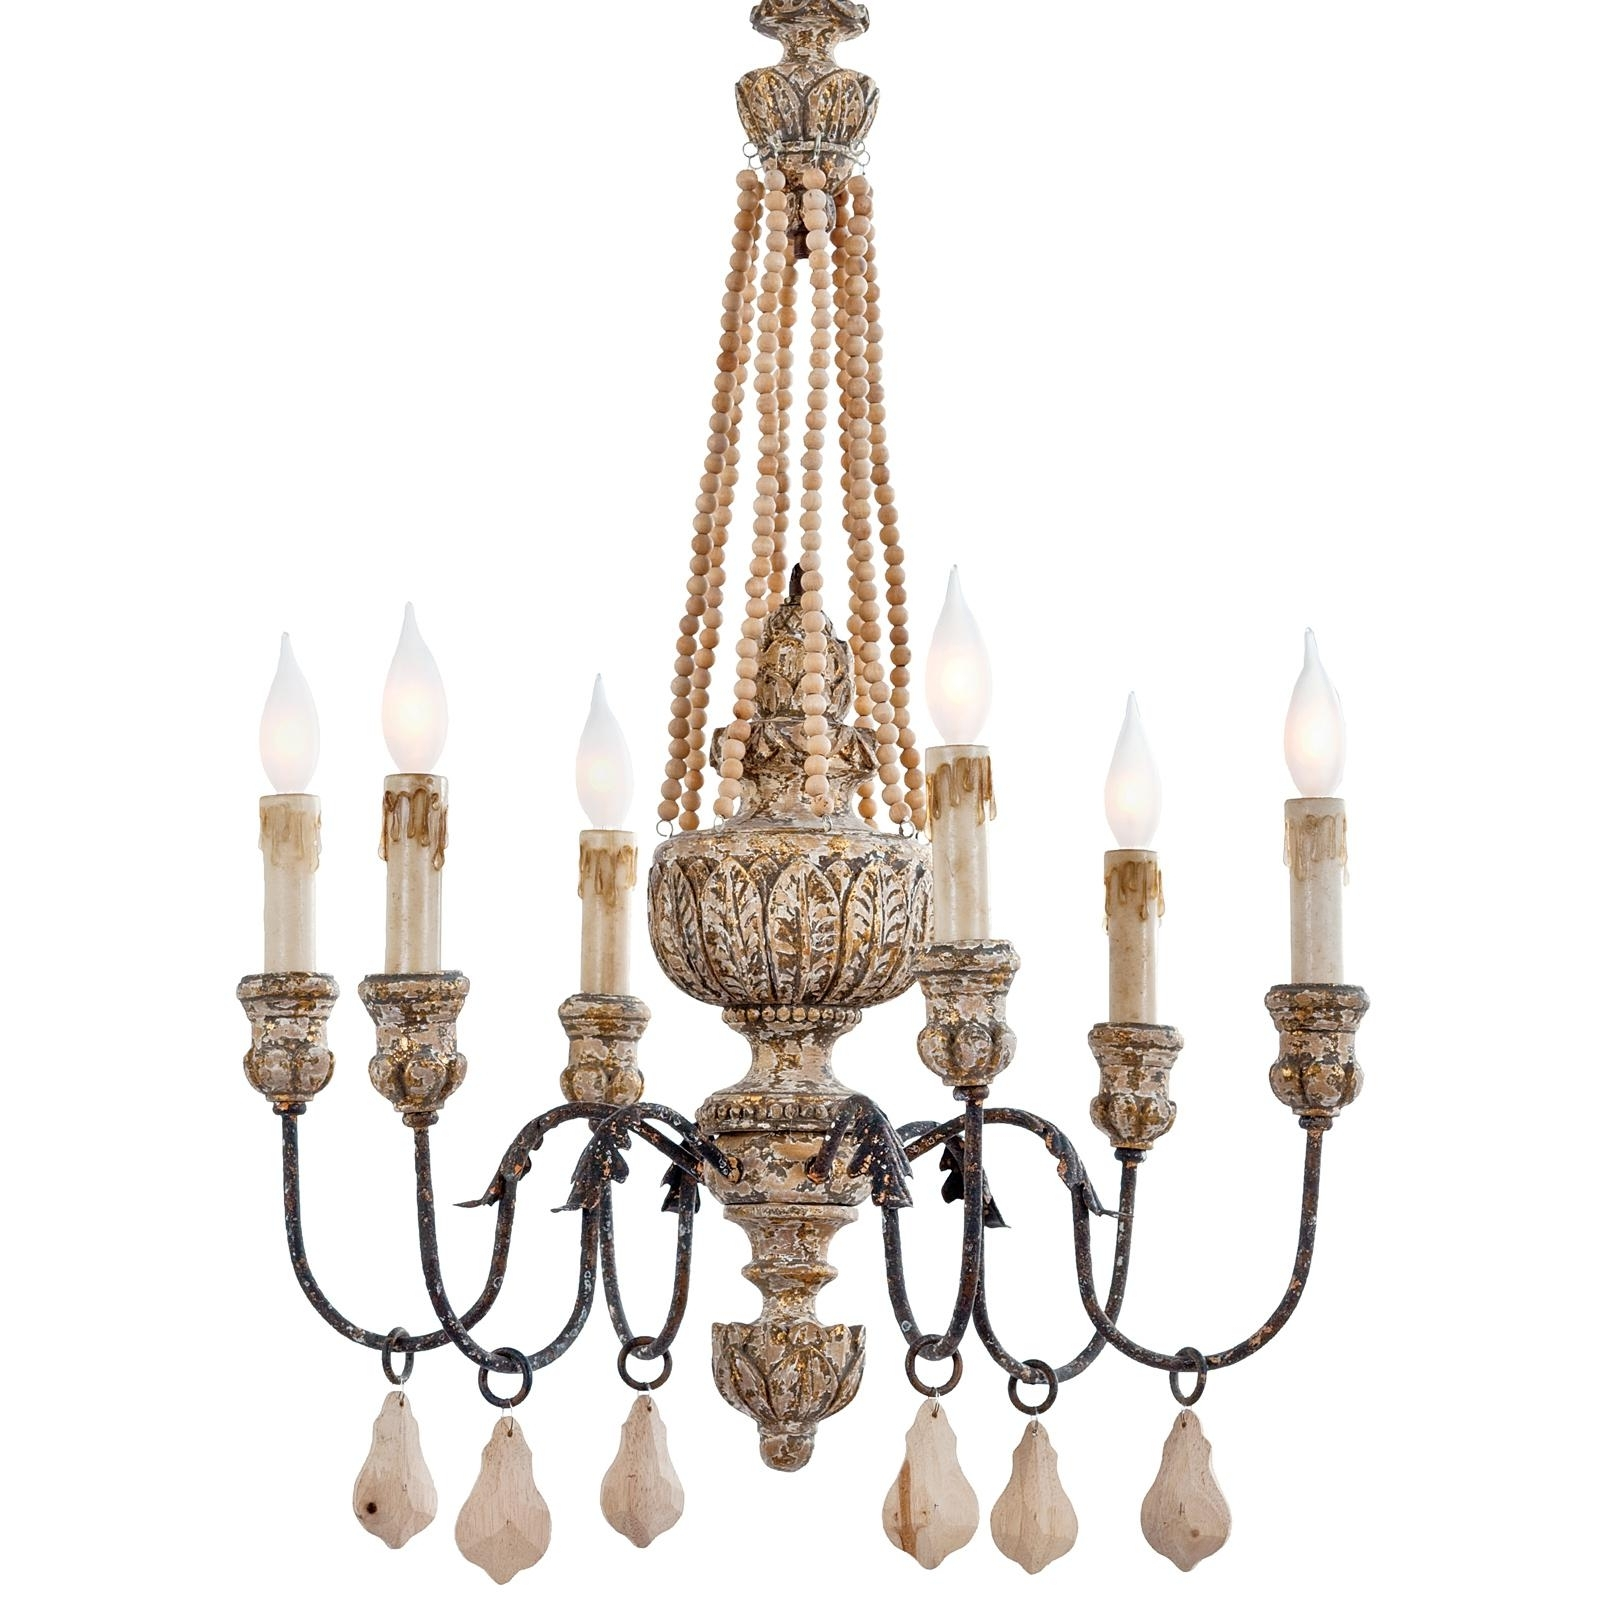 Most Popular Chandelier Accessories Throughout Lighting: Elegant Wooden Chandeliers For Home Accessories Ideas With (View 15 of 20)